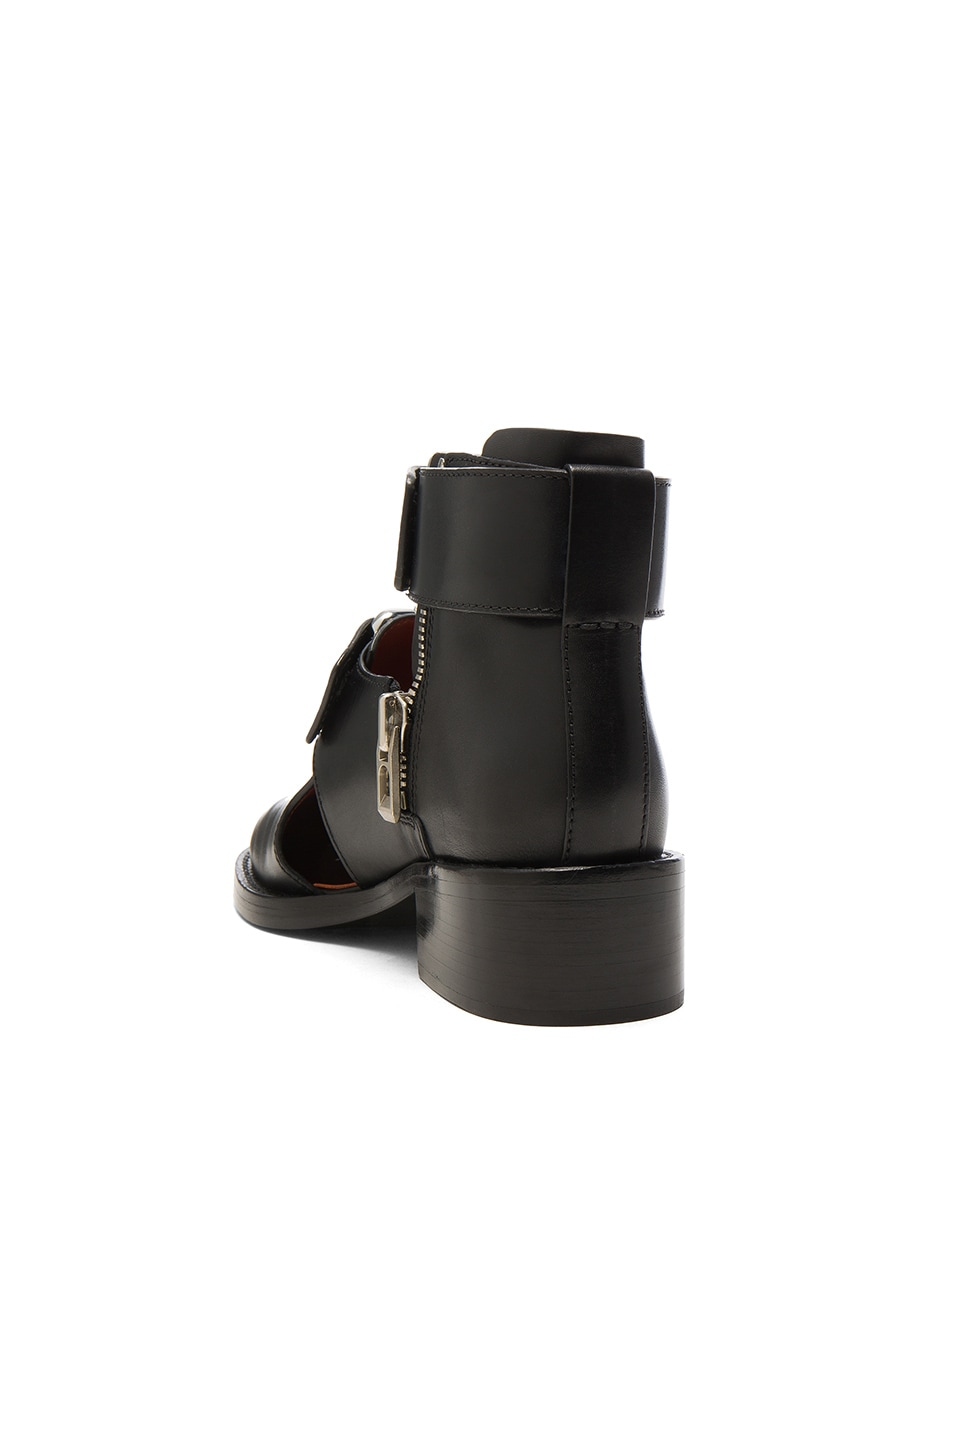 Image 3 of 3.1 phillip lim Leather Addis Cut Out Boots in Black